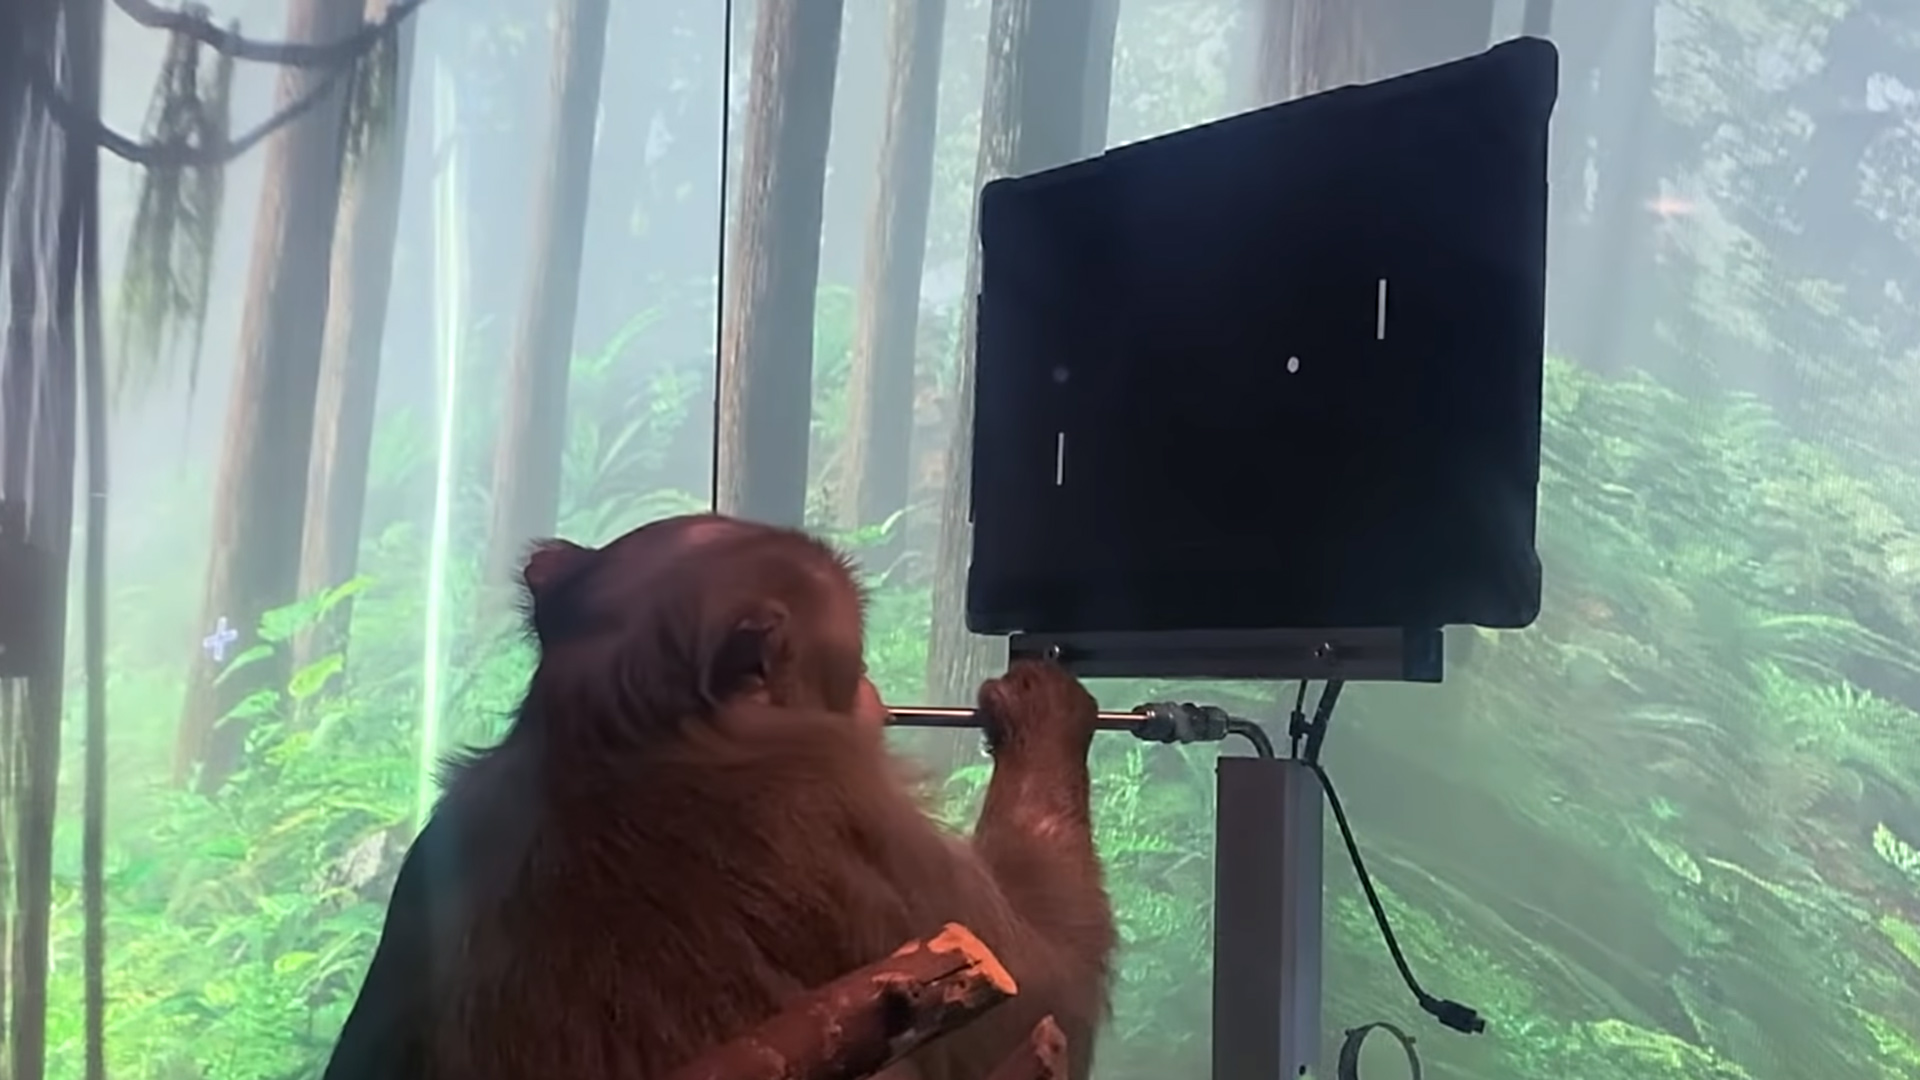 Elon Musk had a monkey learn how to play video games with its mind